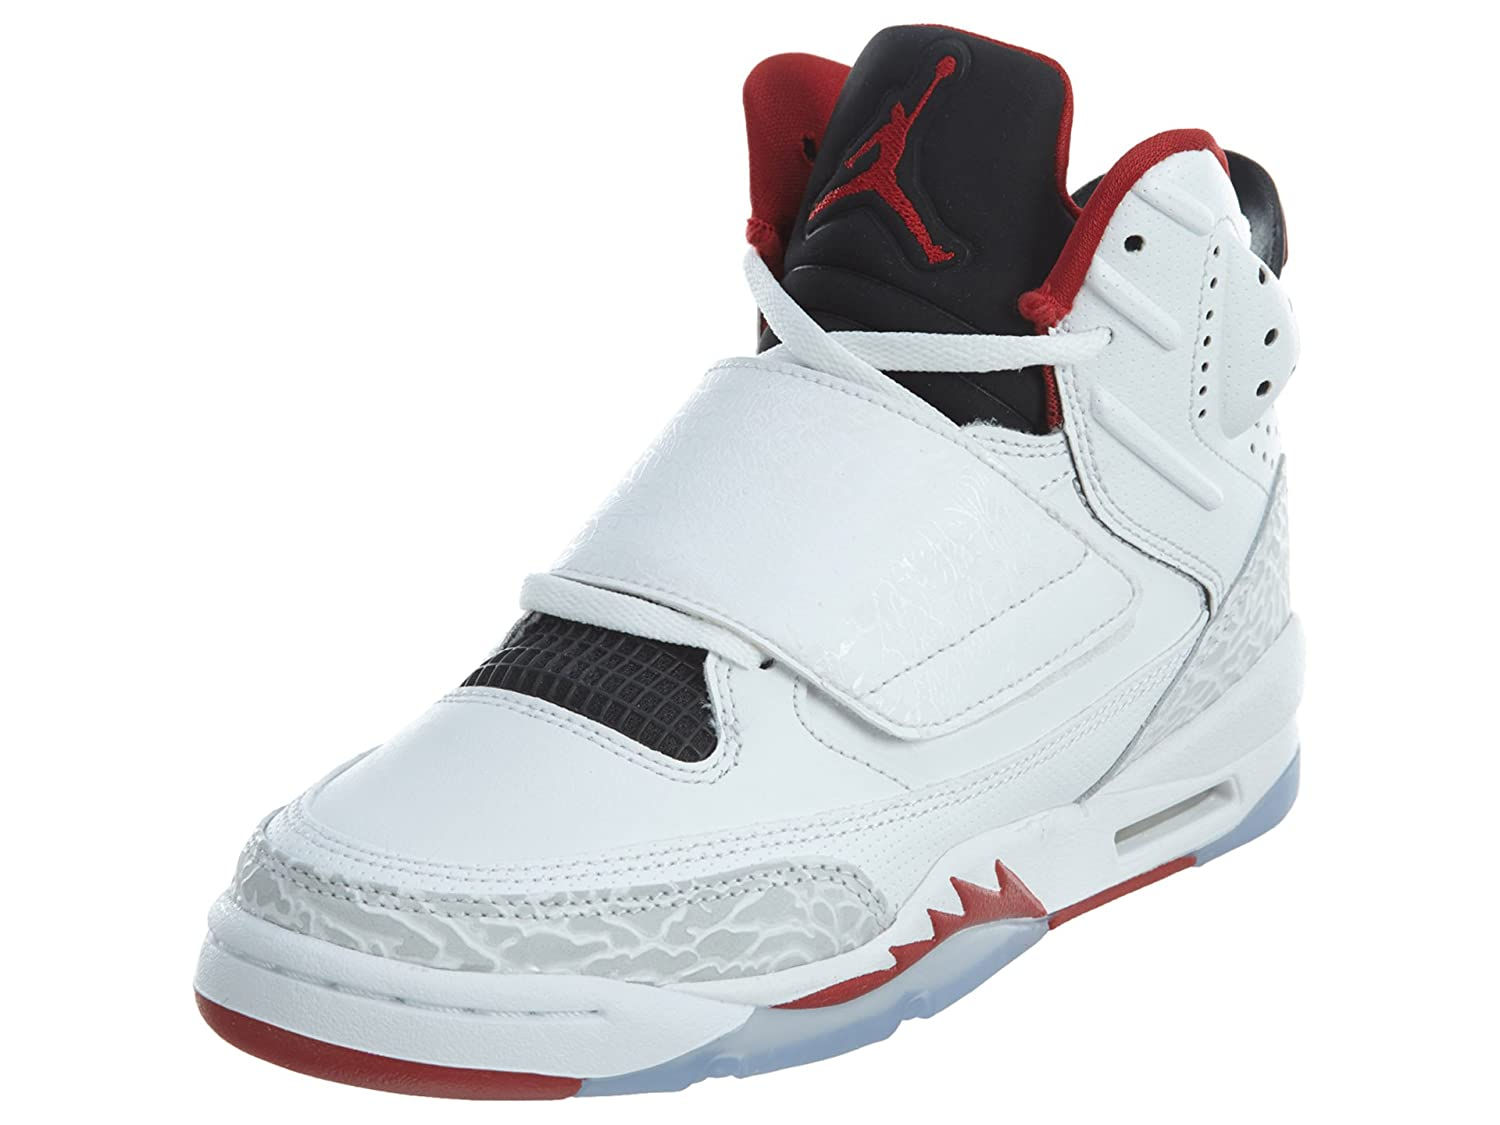 Air Jordan Son Of Stealth-Schuhe  7 M US Little Kid|White/Black/Pure Platinum/Gym Red